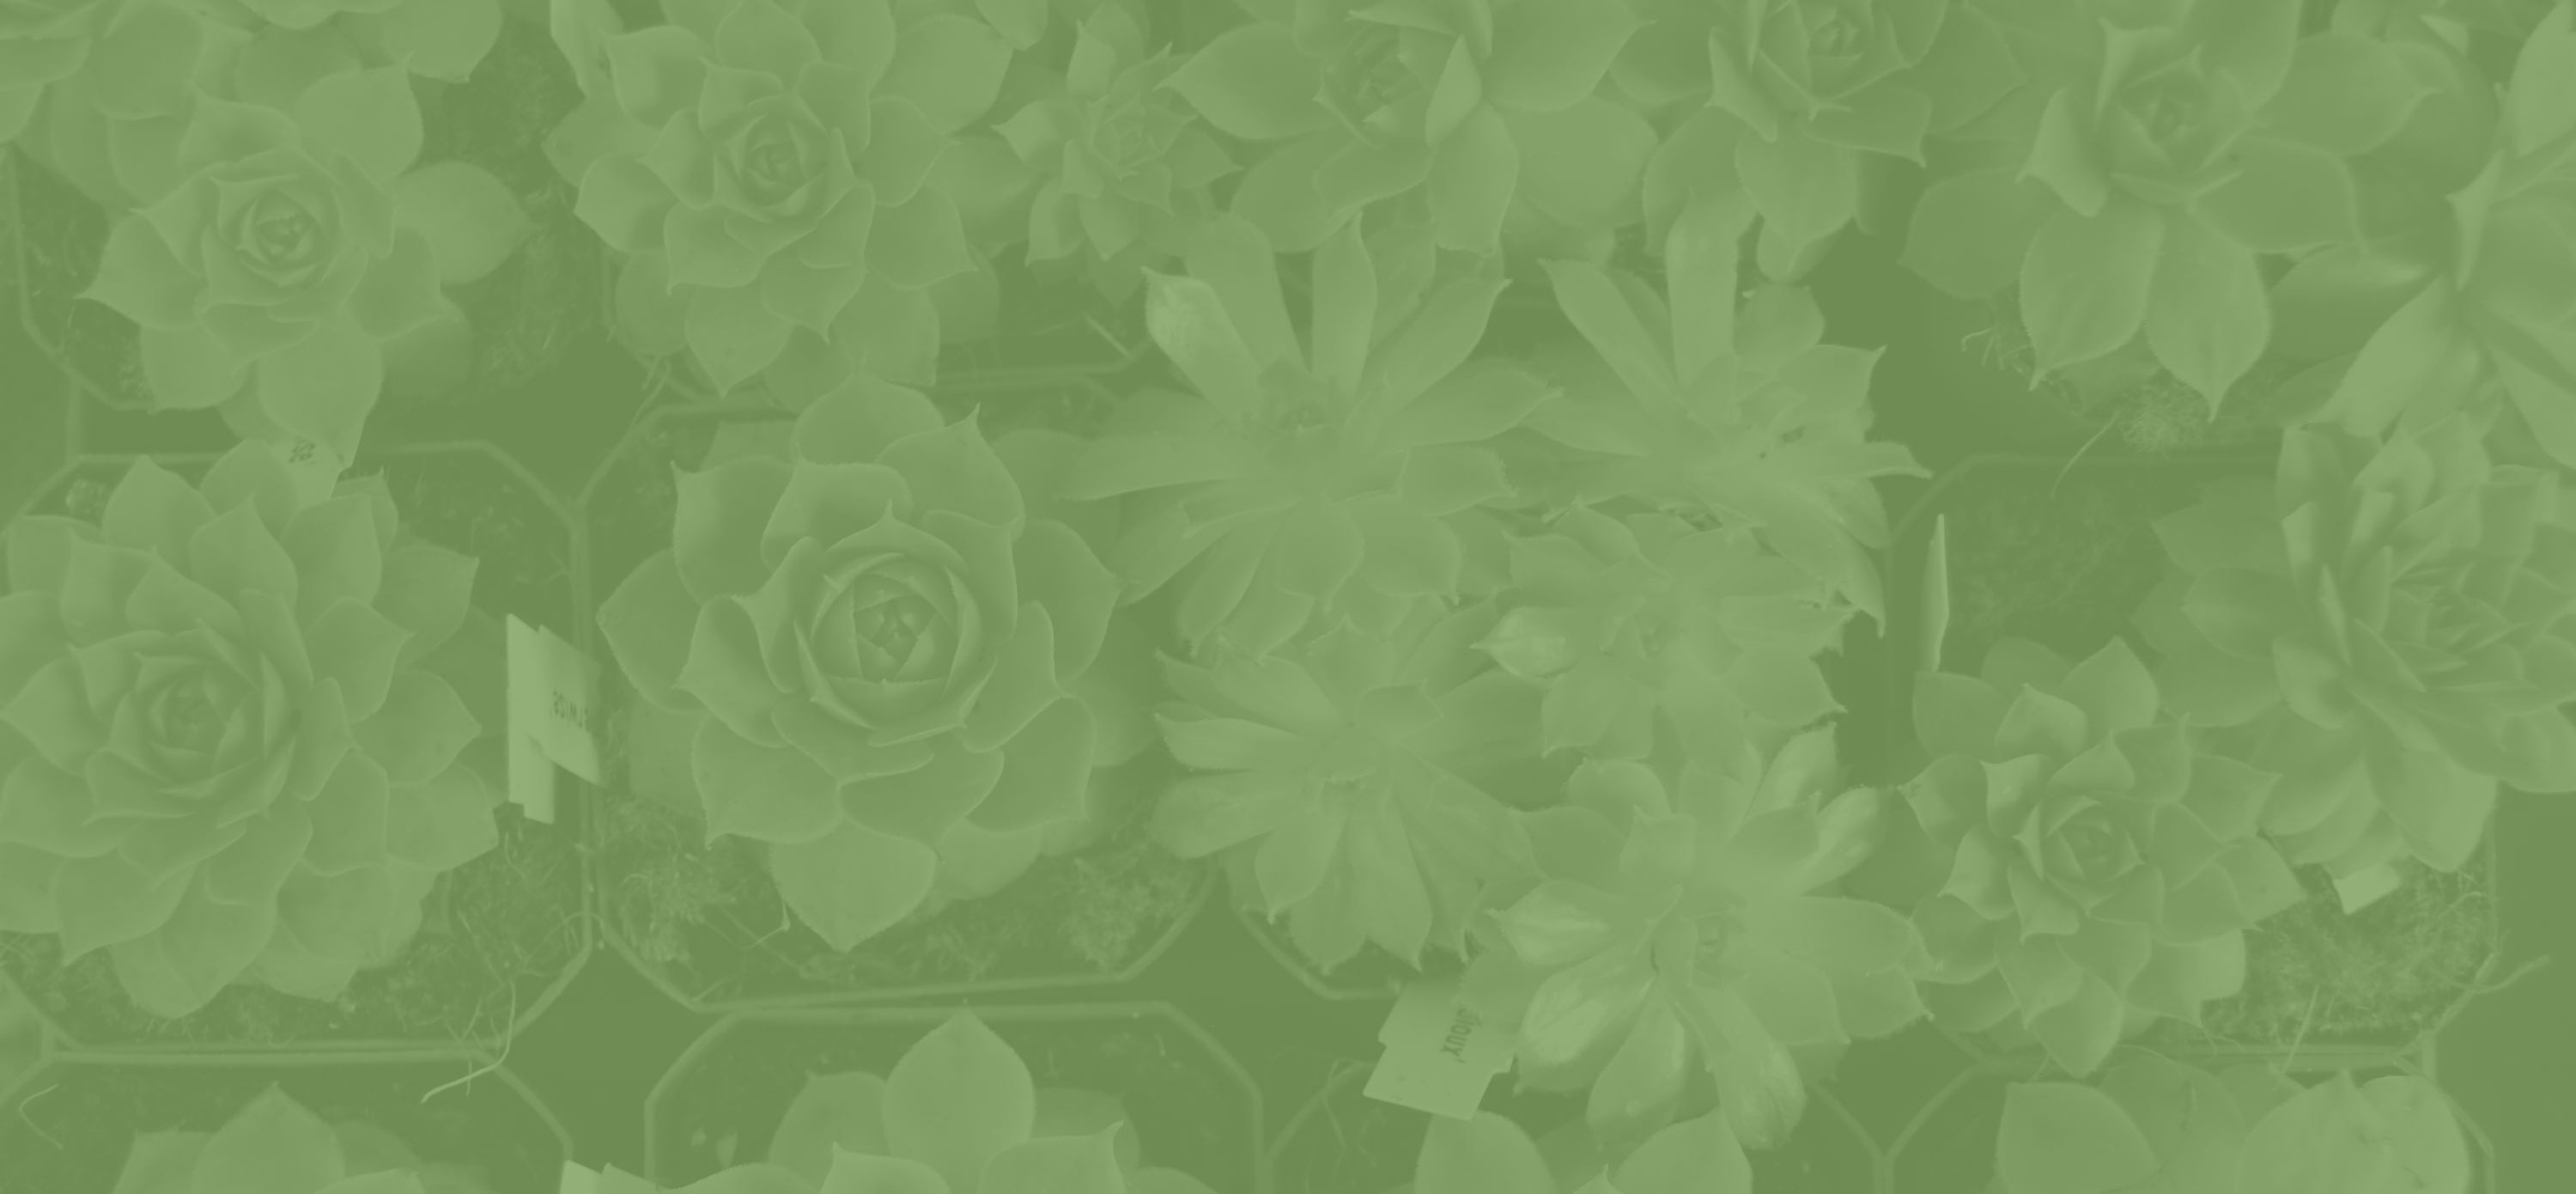 Illustration of a green patterned background for the Cultivate project